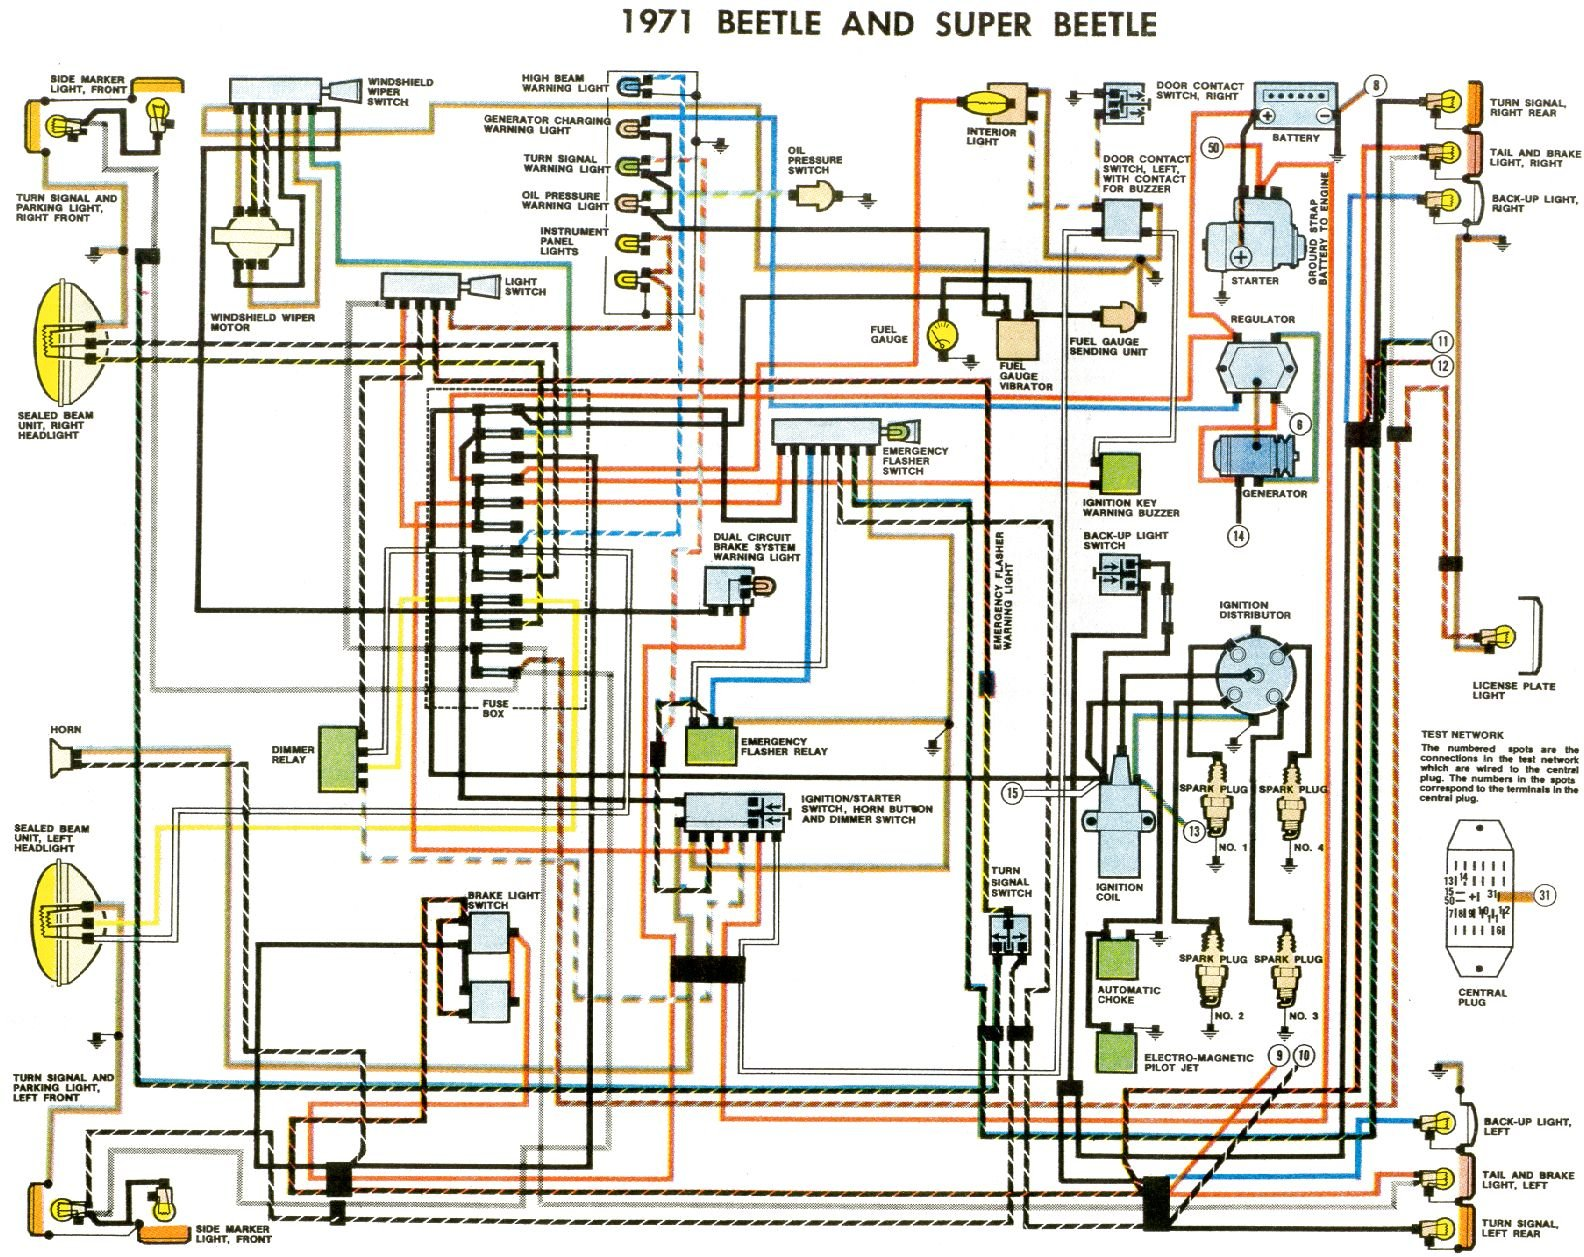 1974 VW Thing Wiring Diagram http://www.thesamba.com/vw/archives/info/wiringt1.php